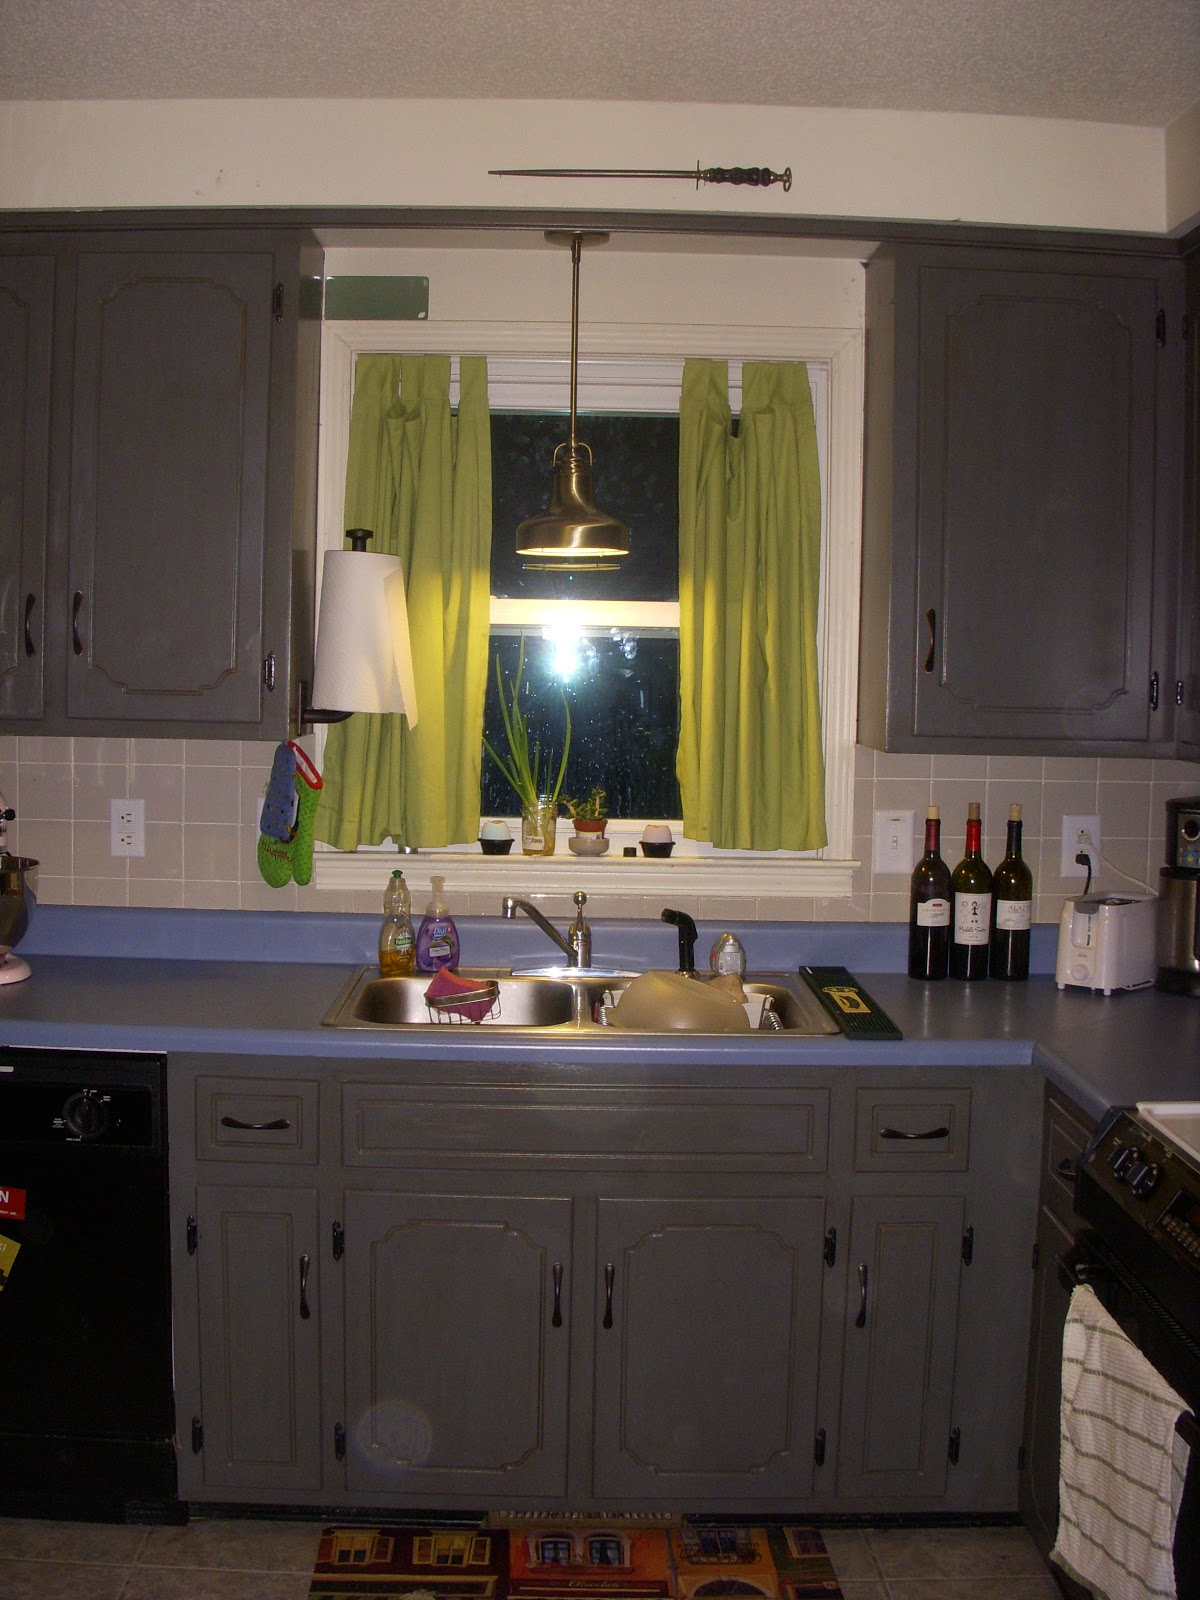 kitchen cabinet paint kitFurniture  Rug Home Depot Cabinet Paint  Kitchen Cabinet Kits